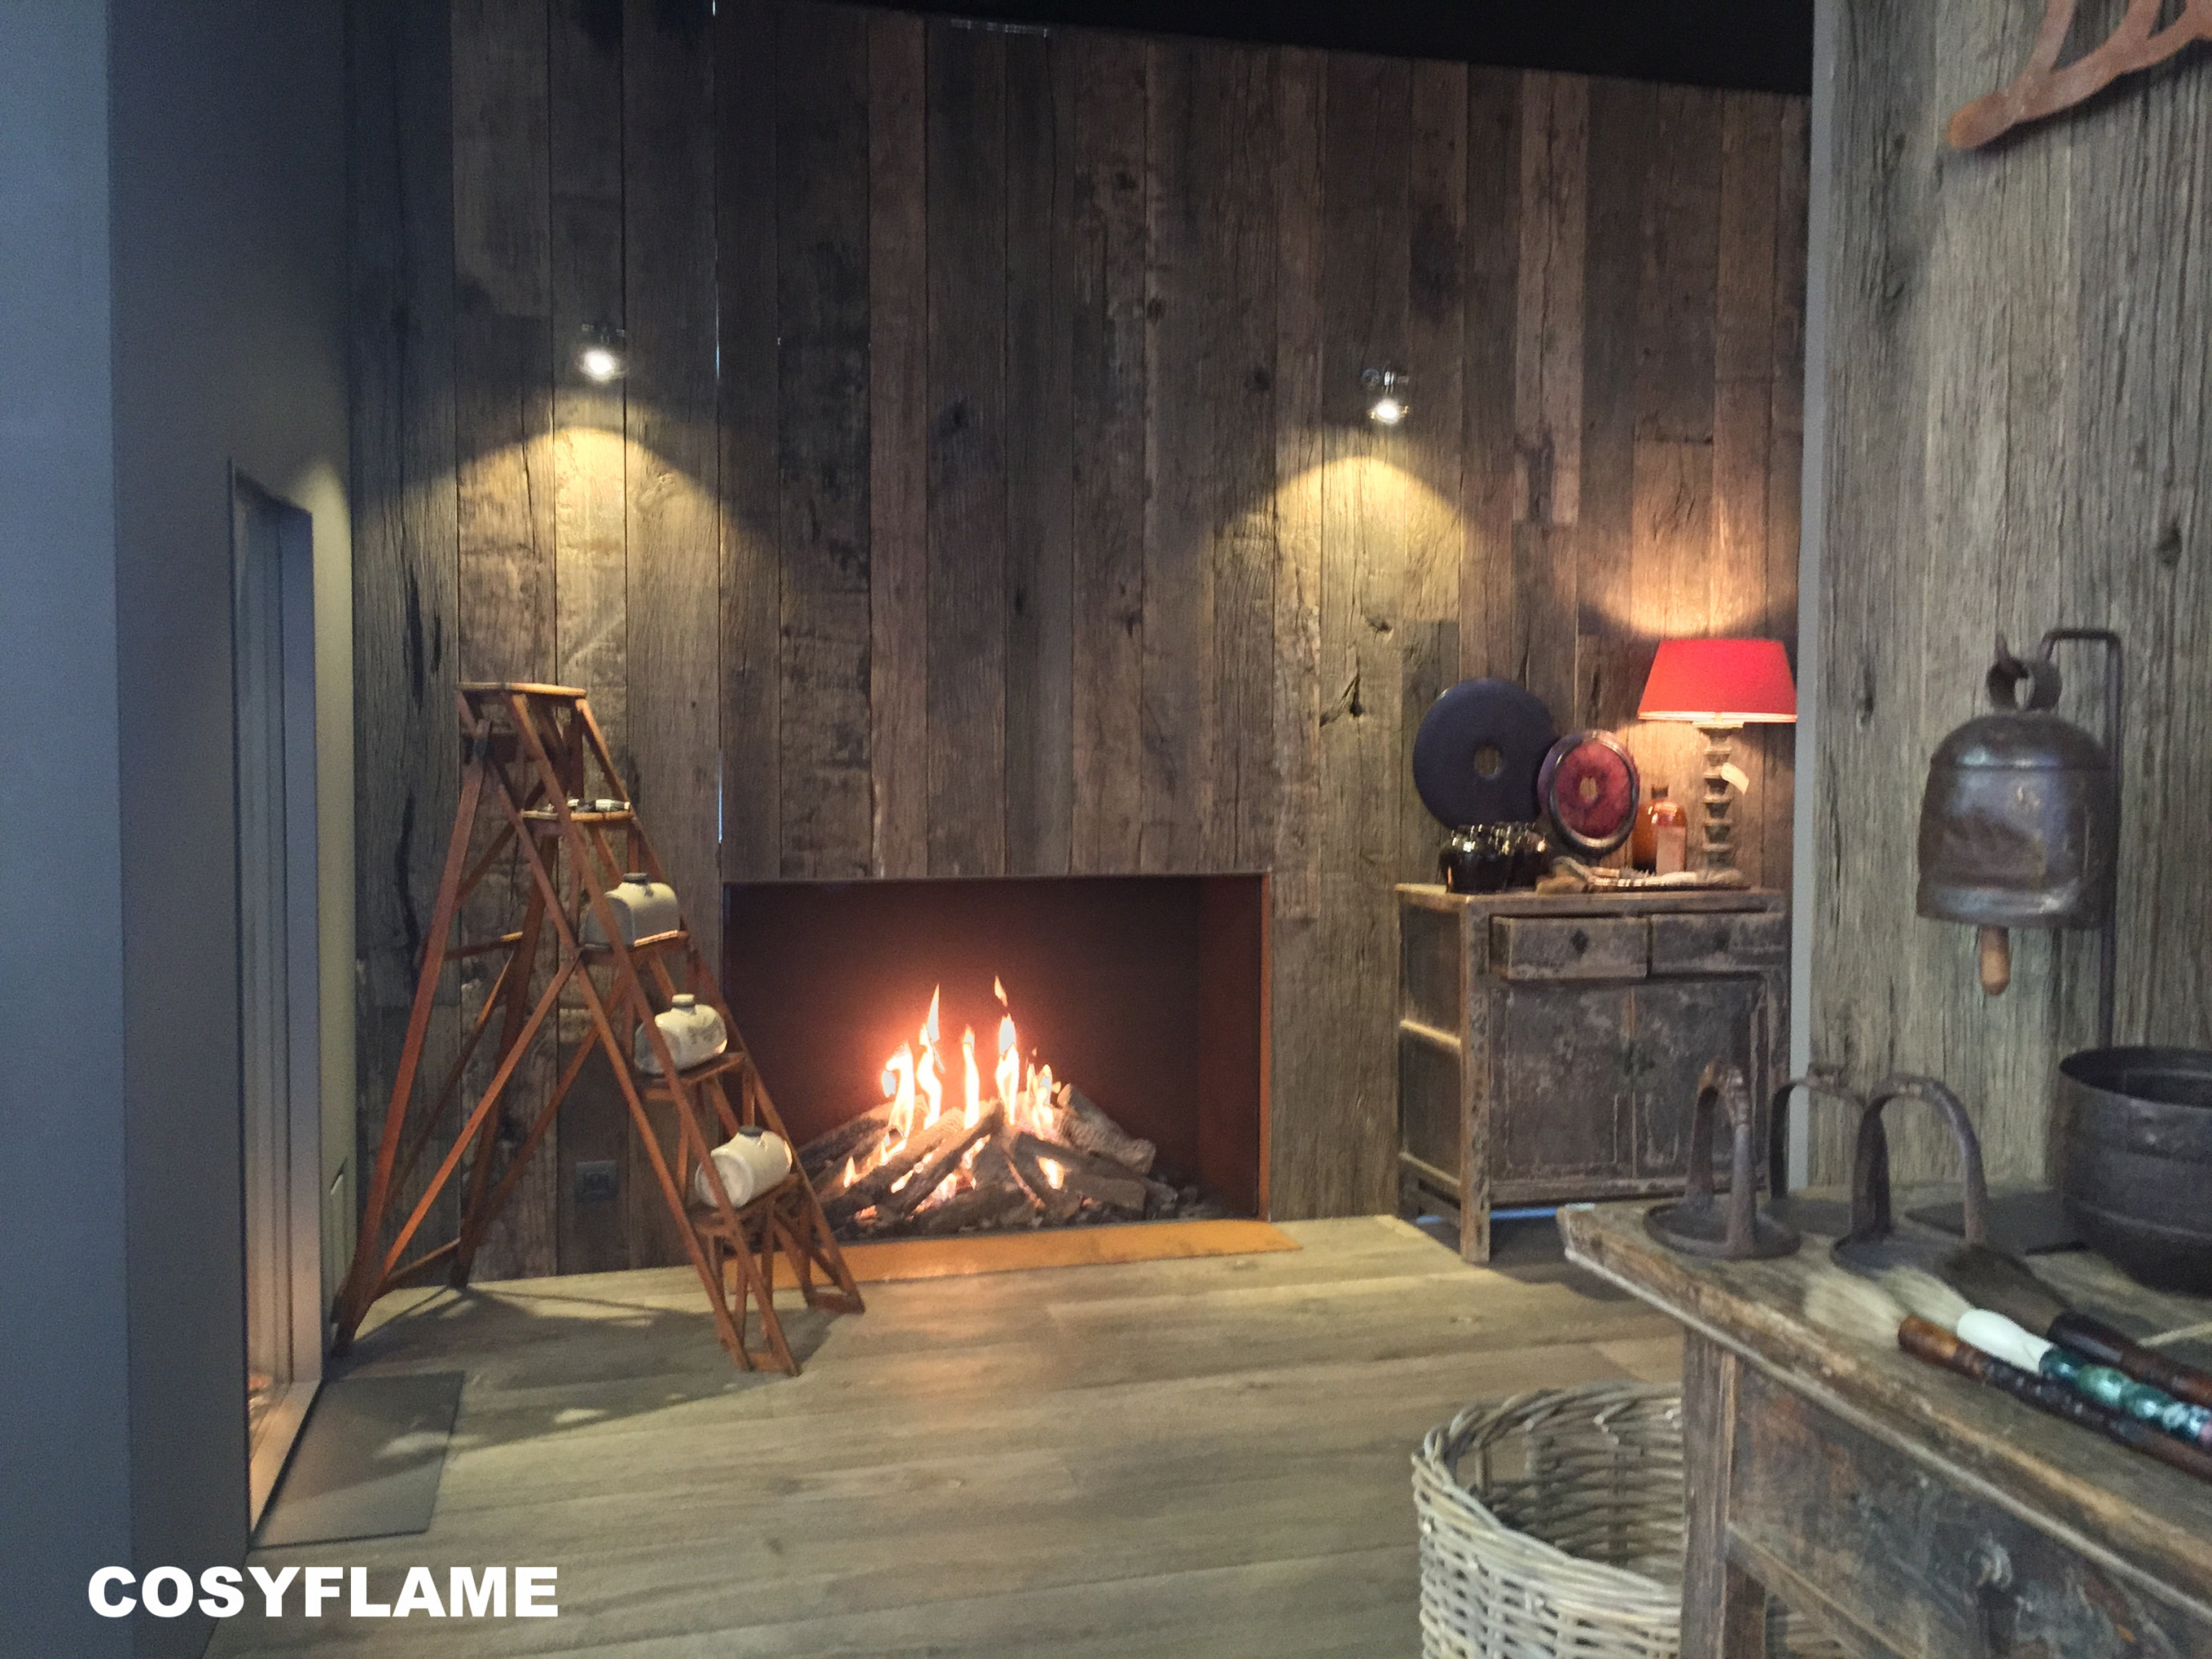 Cosyflame-Corten-file-51